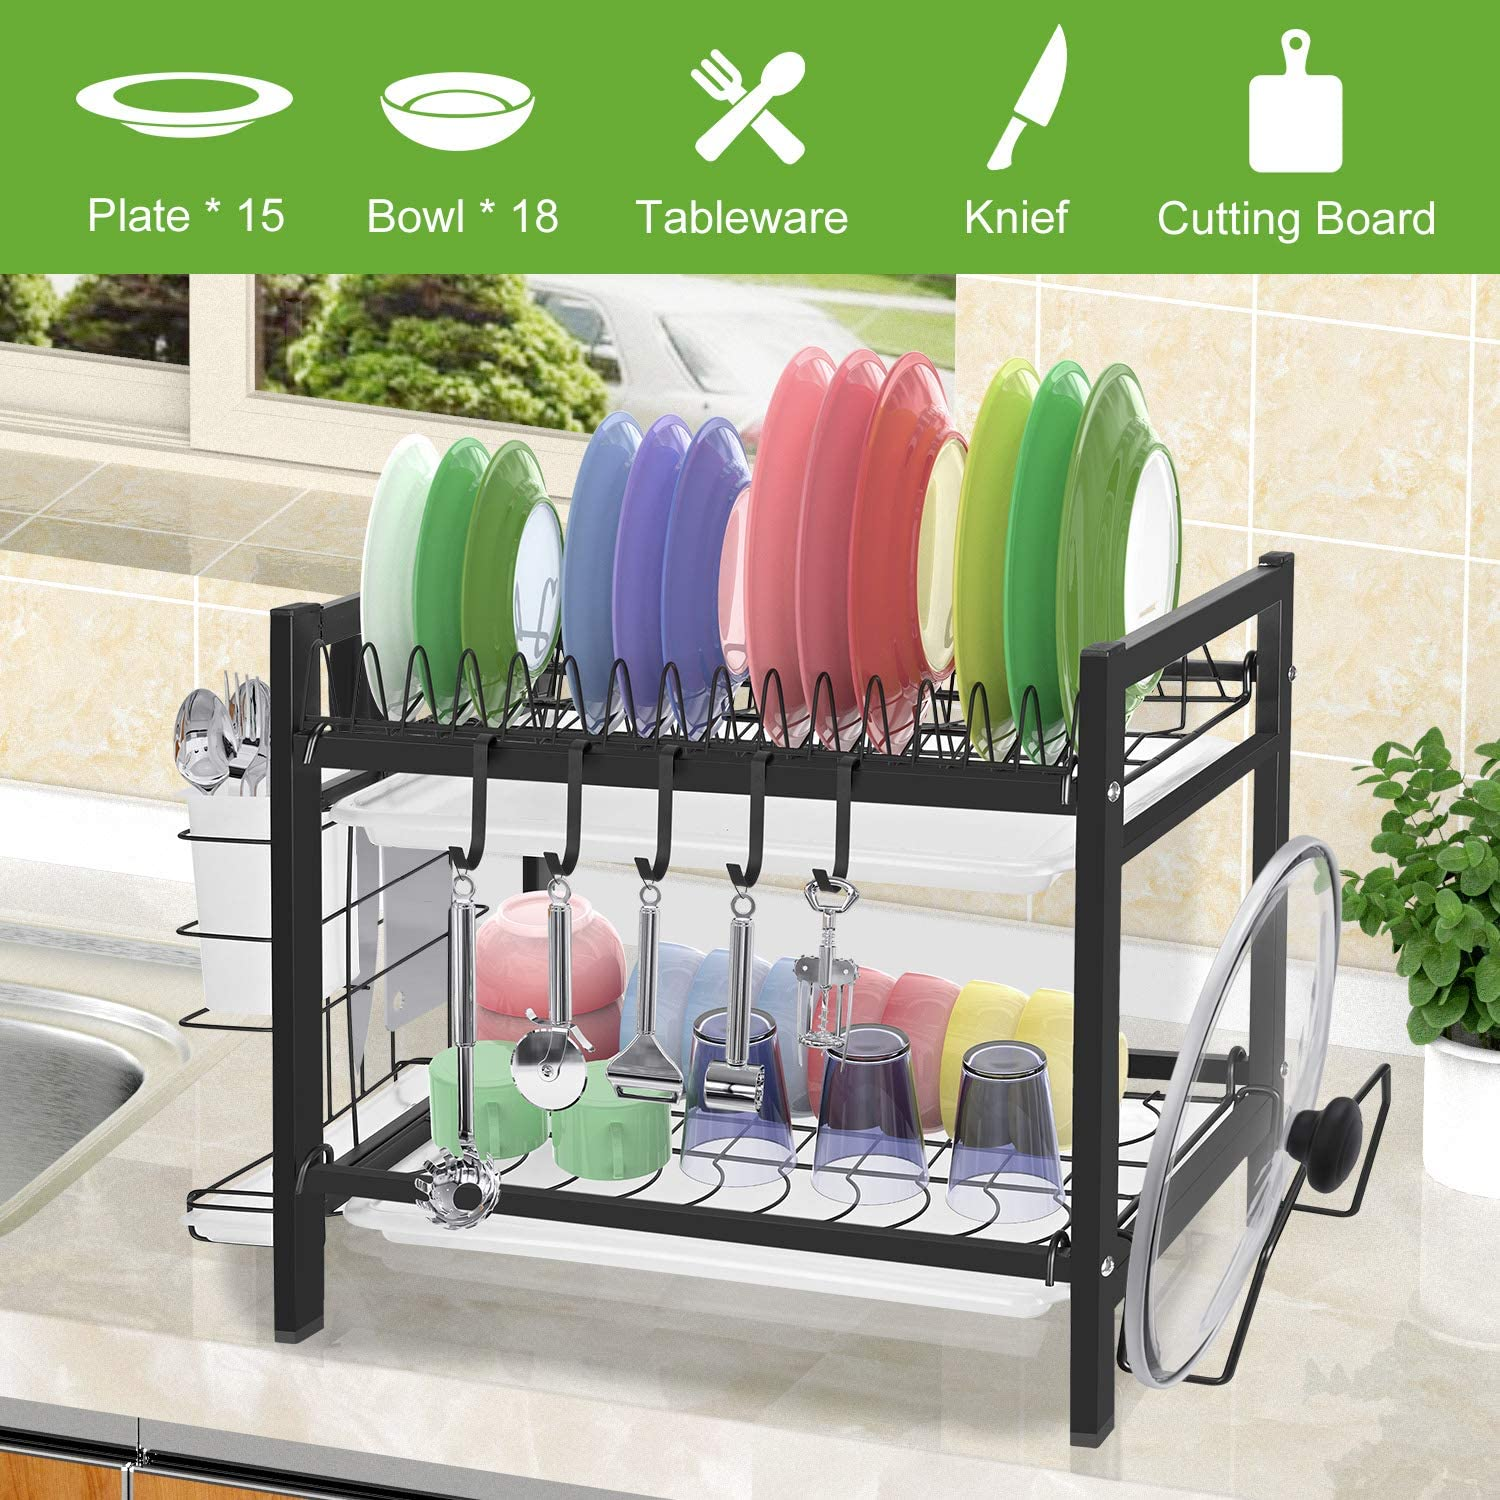 Buy Dish Drying Rack With Drainboard 2 Tier Dish Rack For Kitchen Counter Stainless Steel Dish Drainer Rack With Utensil Holder Cutting Board Holder Rustproof Dish Strainer Drying Rack With Drainage